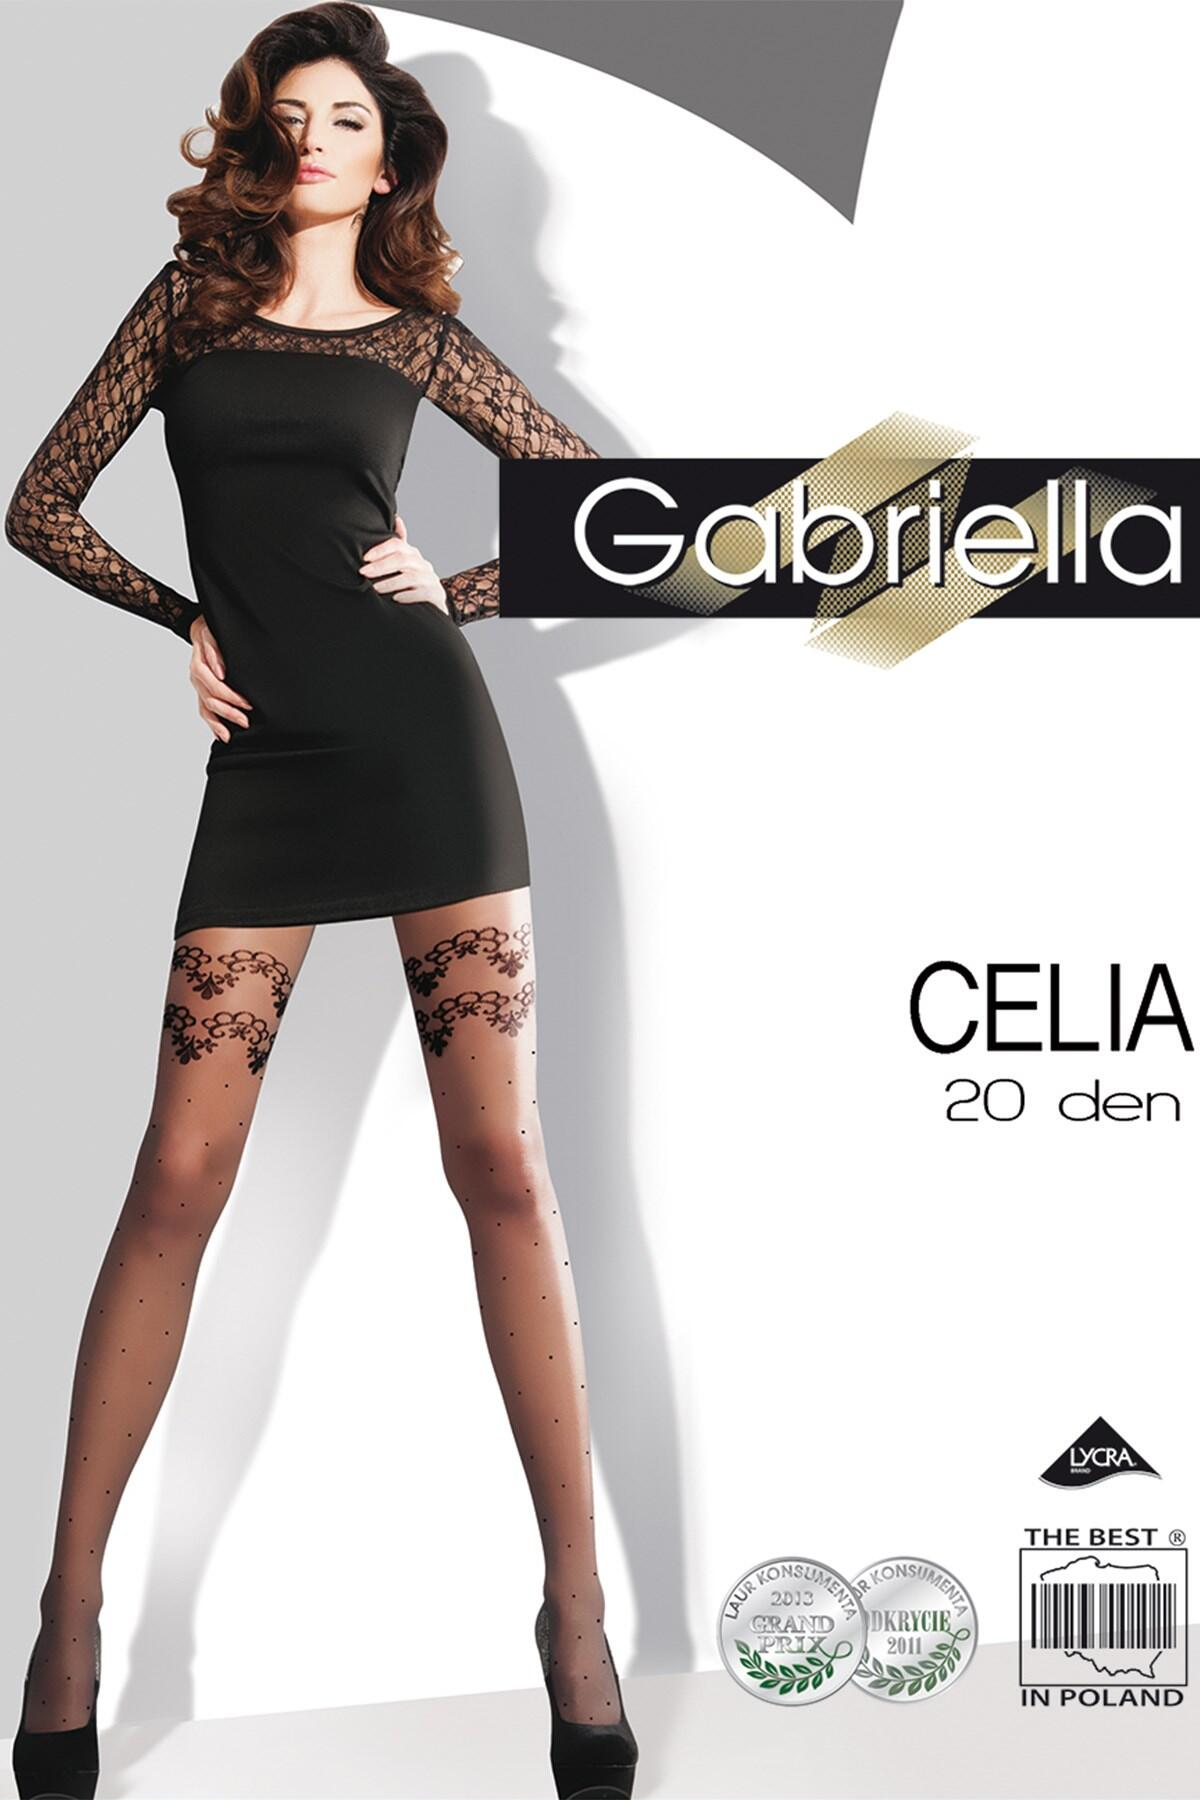 Gabriella Celia Fashion 20 Den Lycra - Black